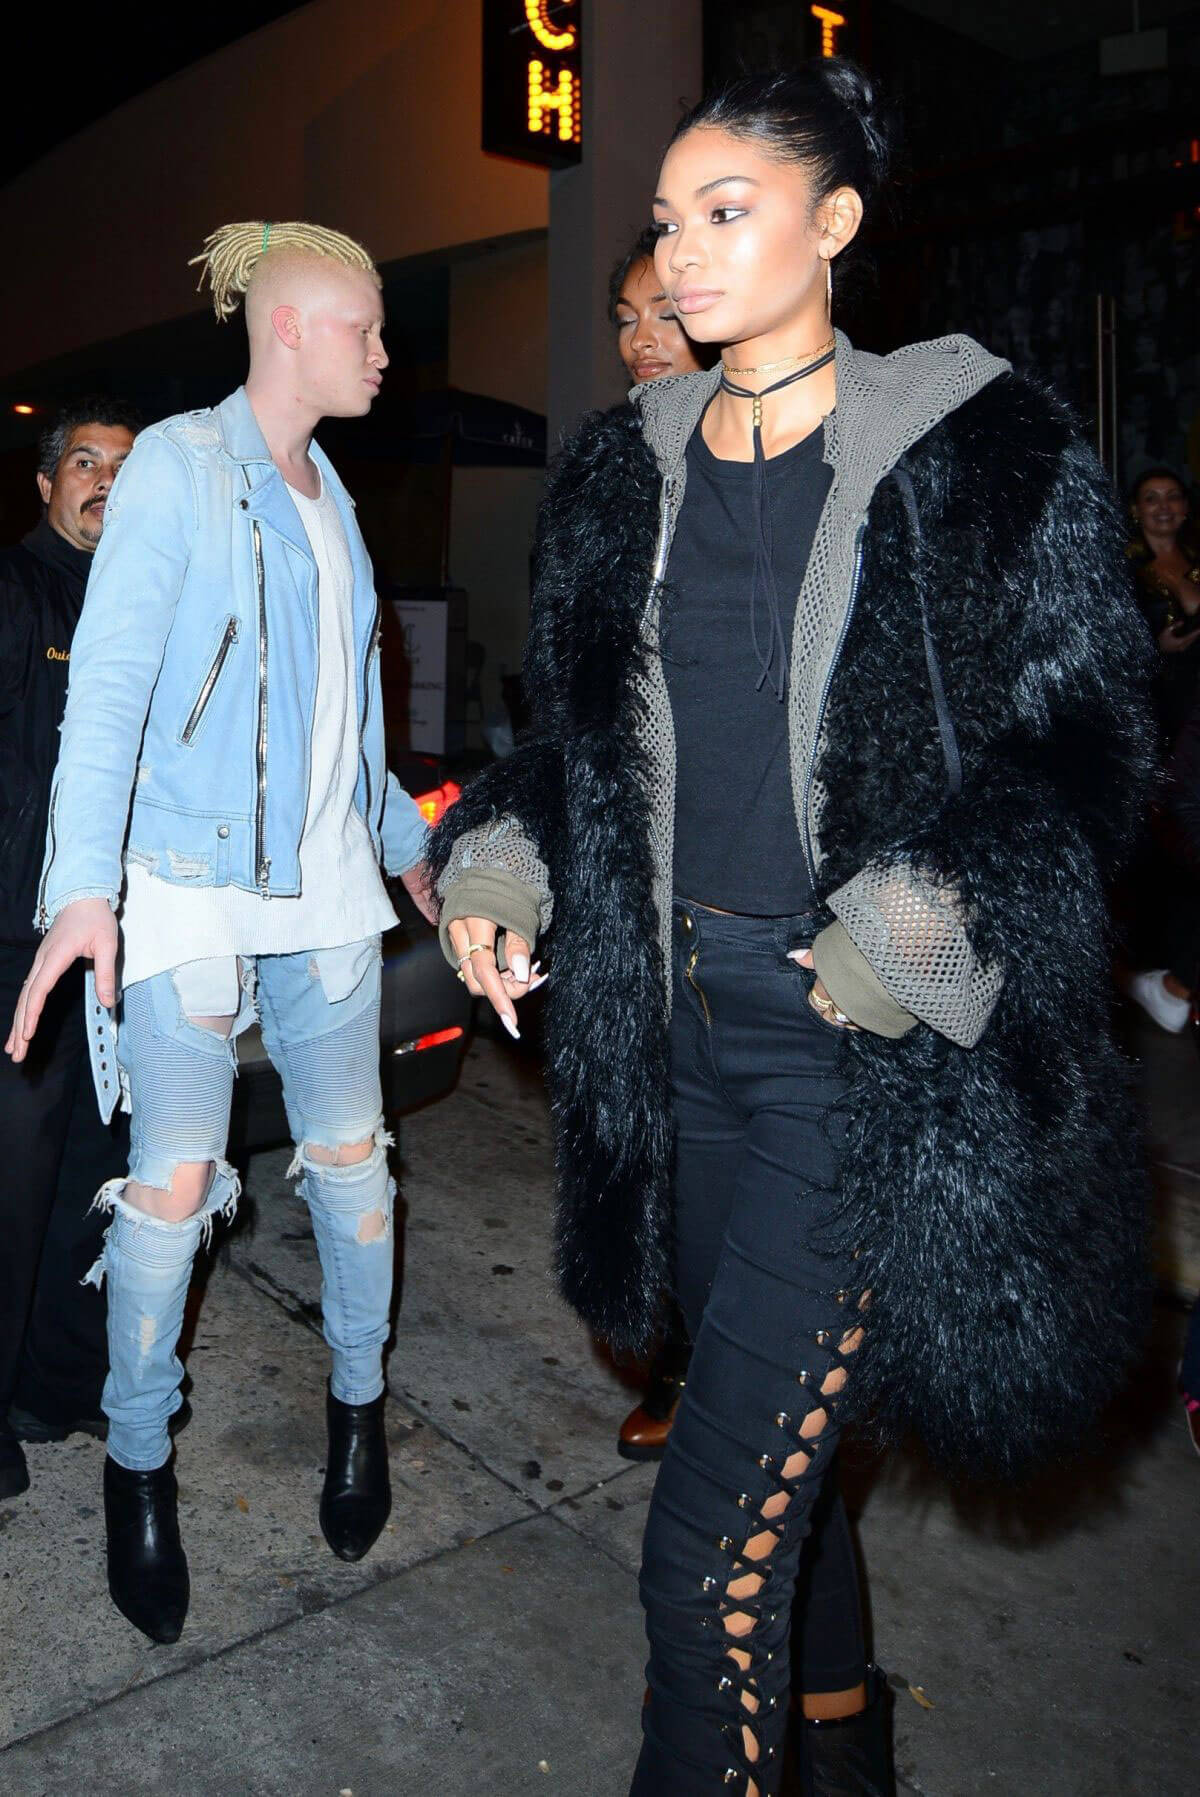 Chanel Iman and Jourdan Dunn at Catch LA in West Hollywood